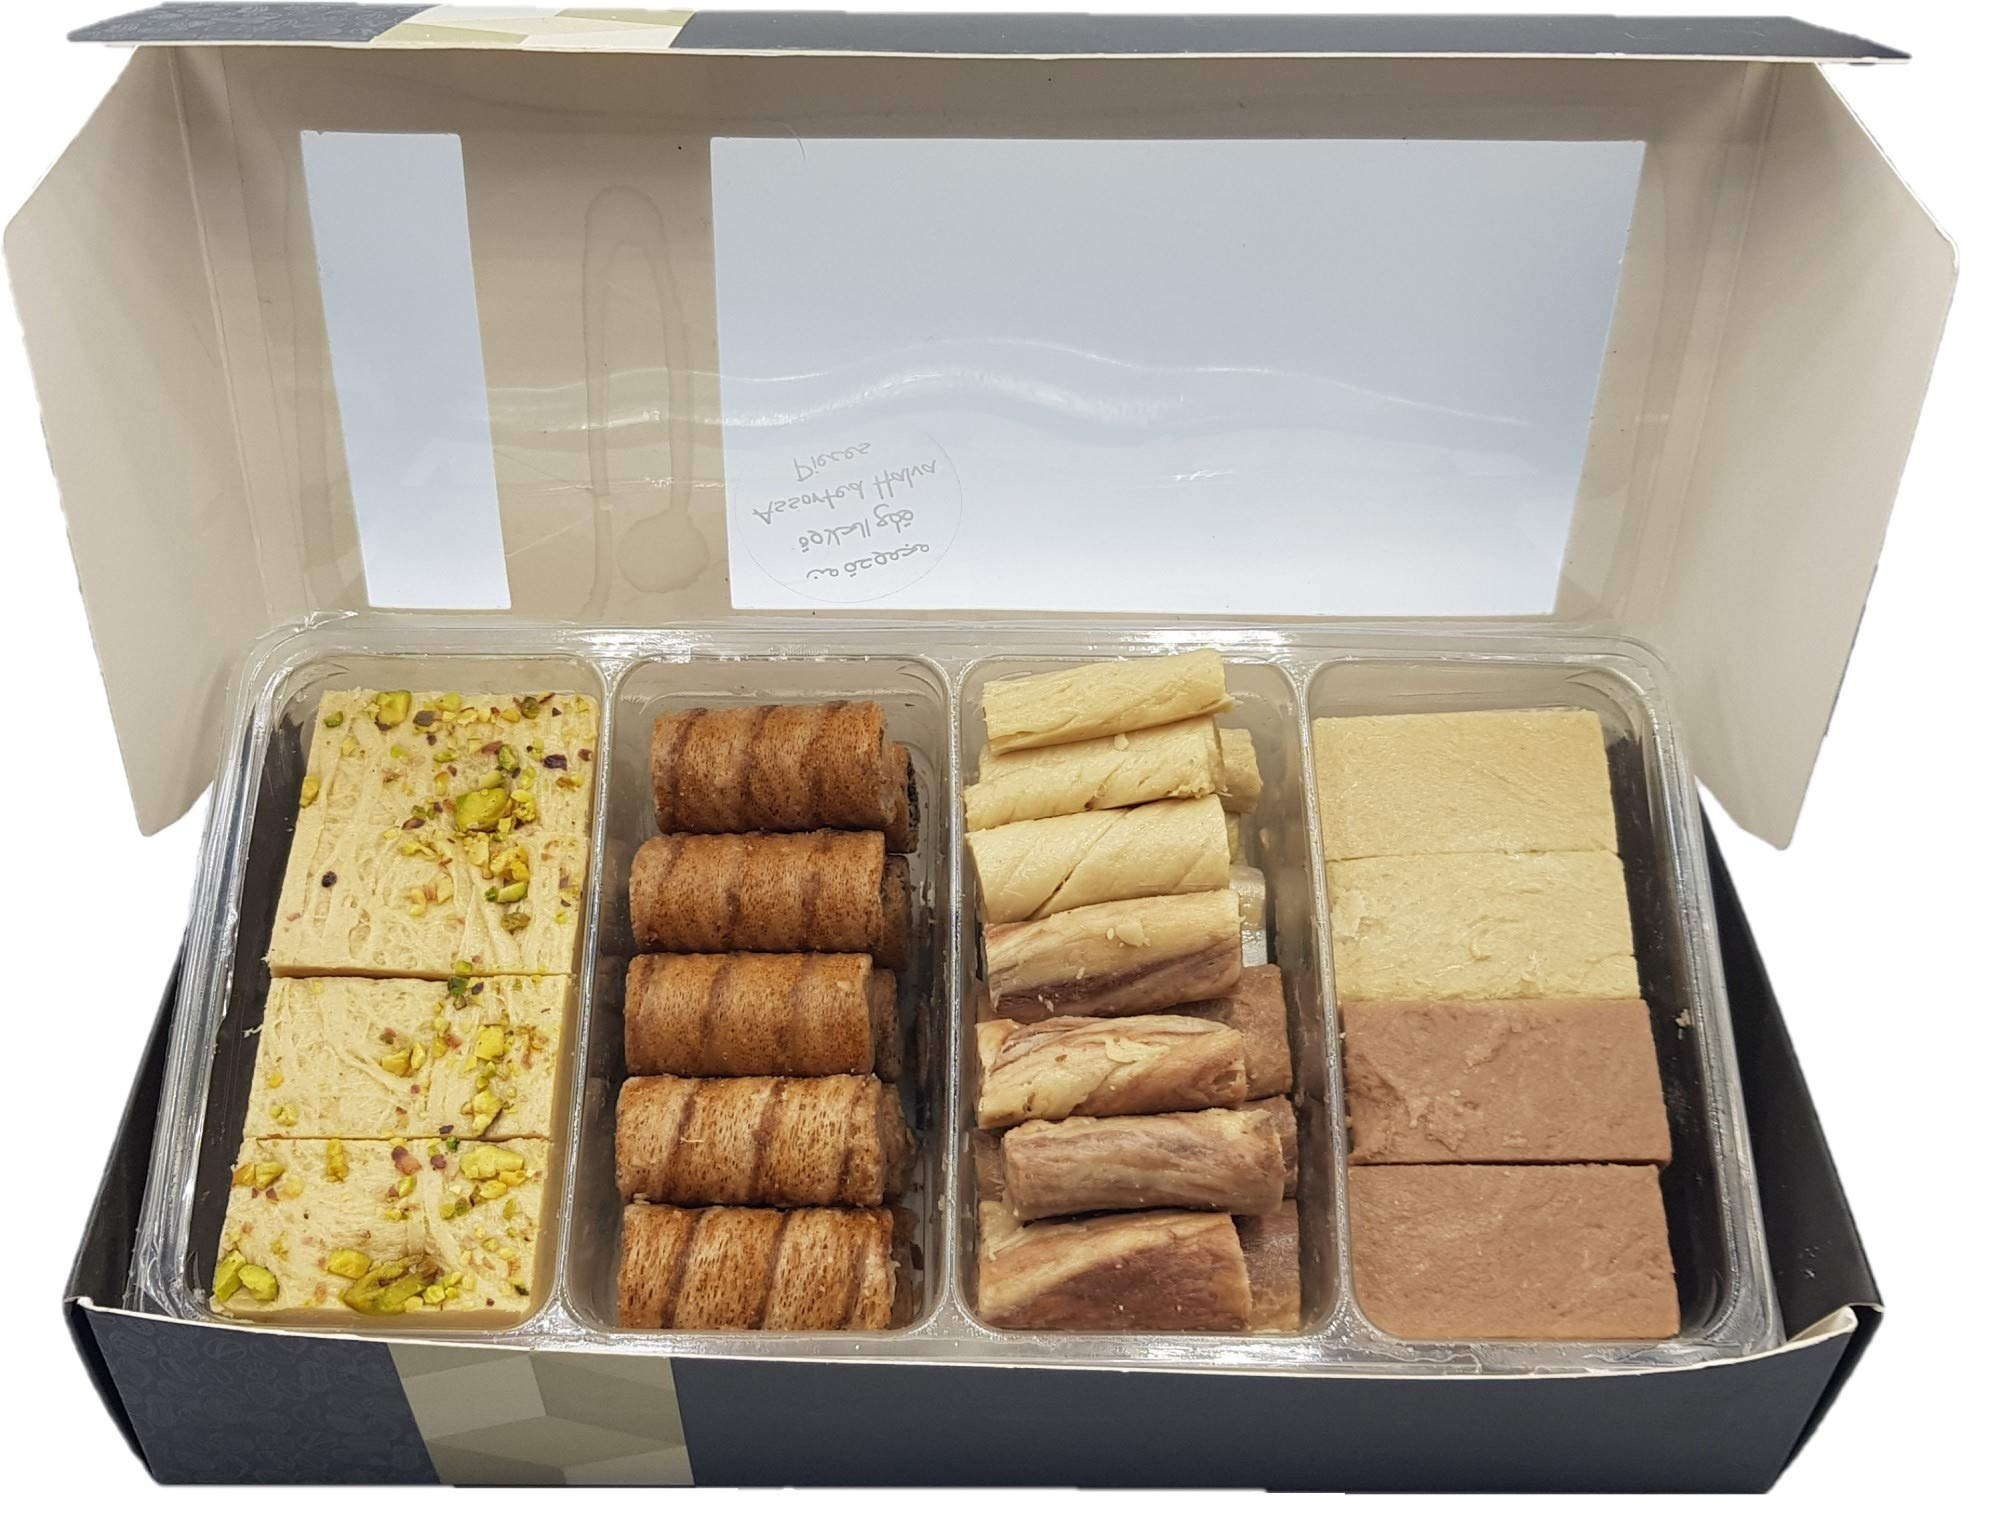 Artisanal Halvah Bars Assorted - 5 Varieties: Pistachio, Marble & Plain - Tahini Halvah Bars (1.8 lbs, 30 Oz, 800 Grams NET, 85-90 Pcs, 4 Layers) Halawa - Flaky Turkish Halva Very Classy Box